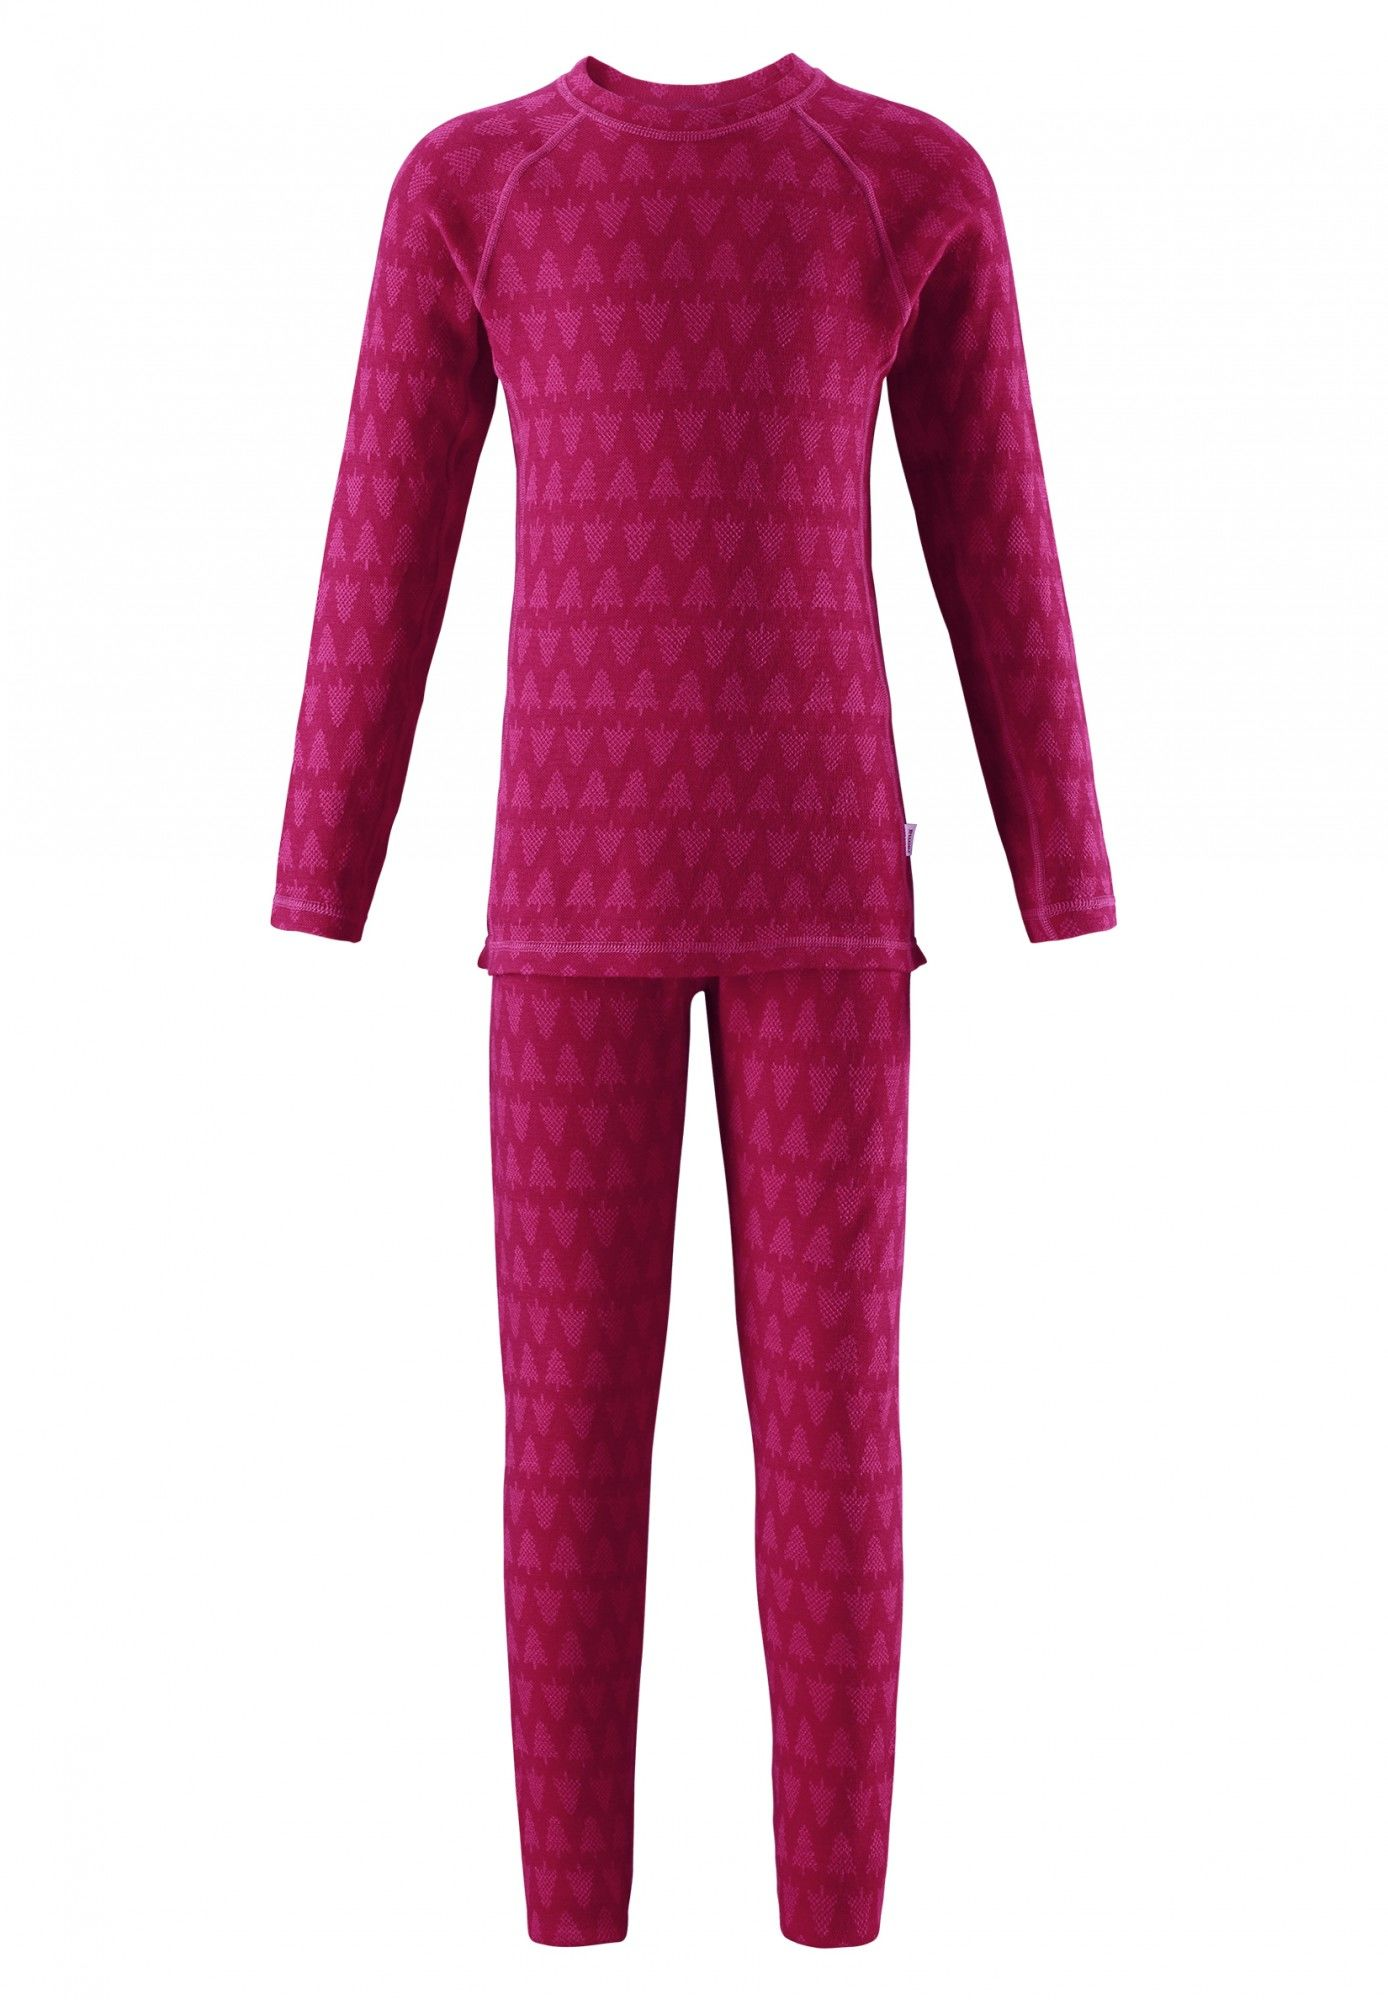 Reima Kids Taival Thermal Set Pink, 80 -Farbe Dark Berry, 80